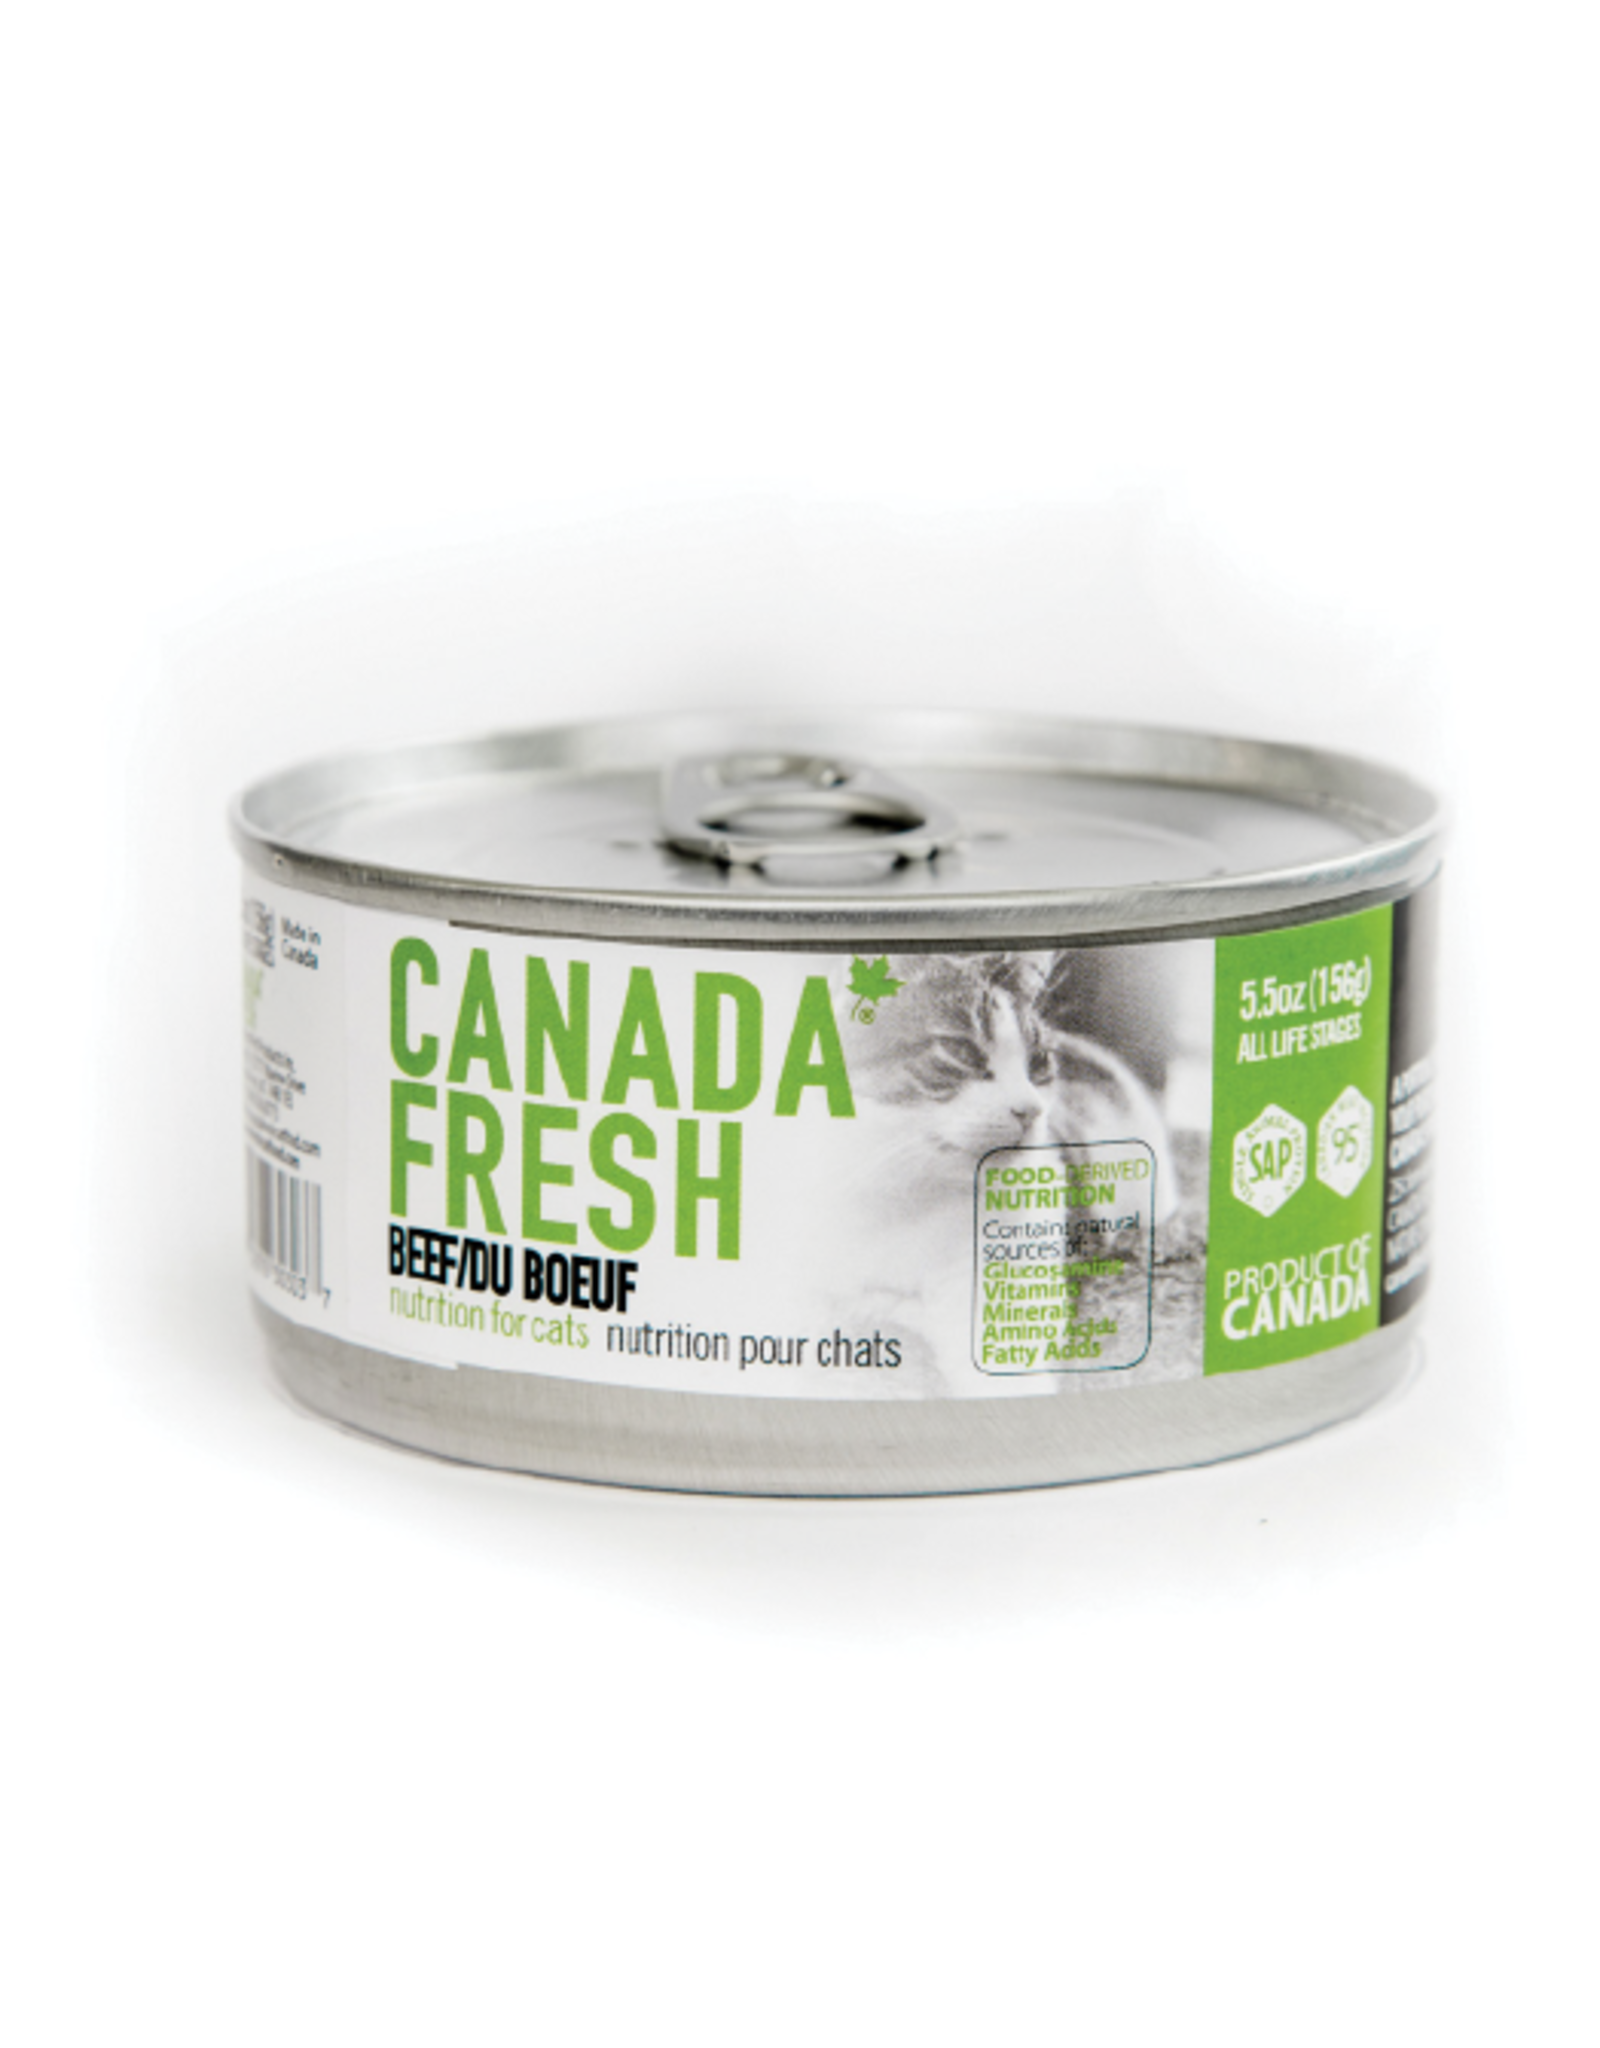 PETKIND CanadaFresh CAT Beef 5.5oz